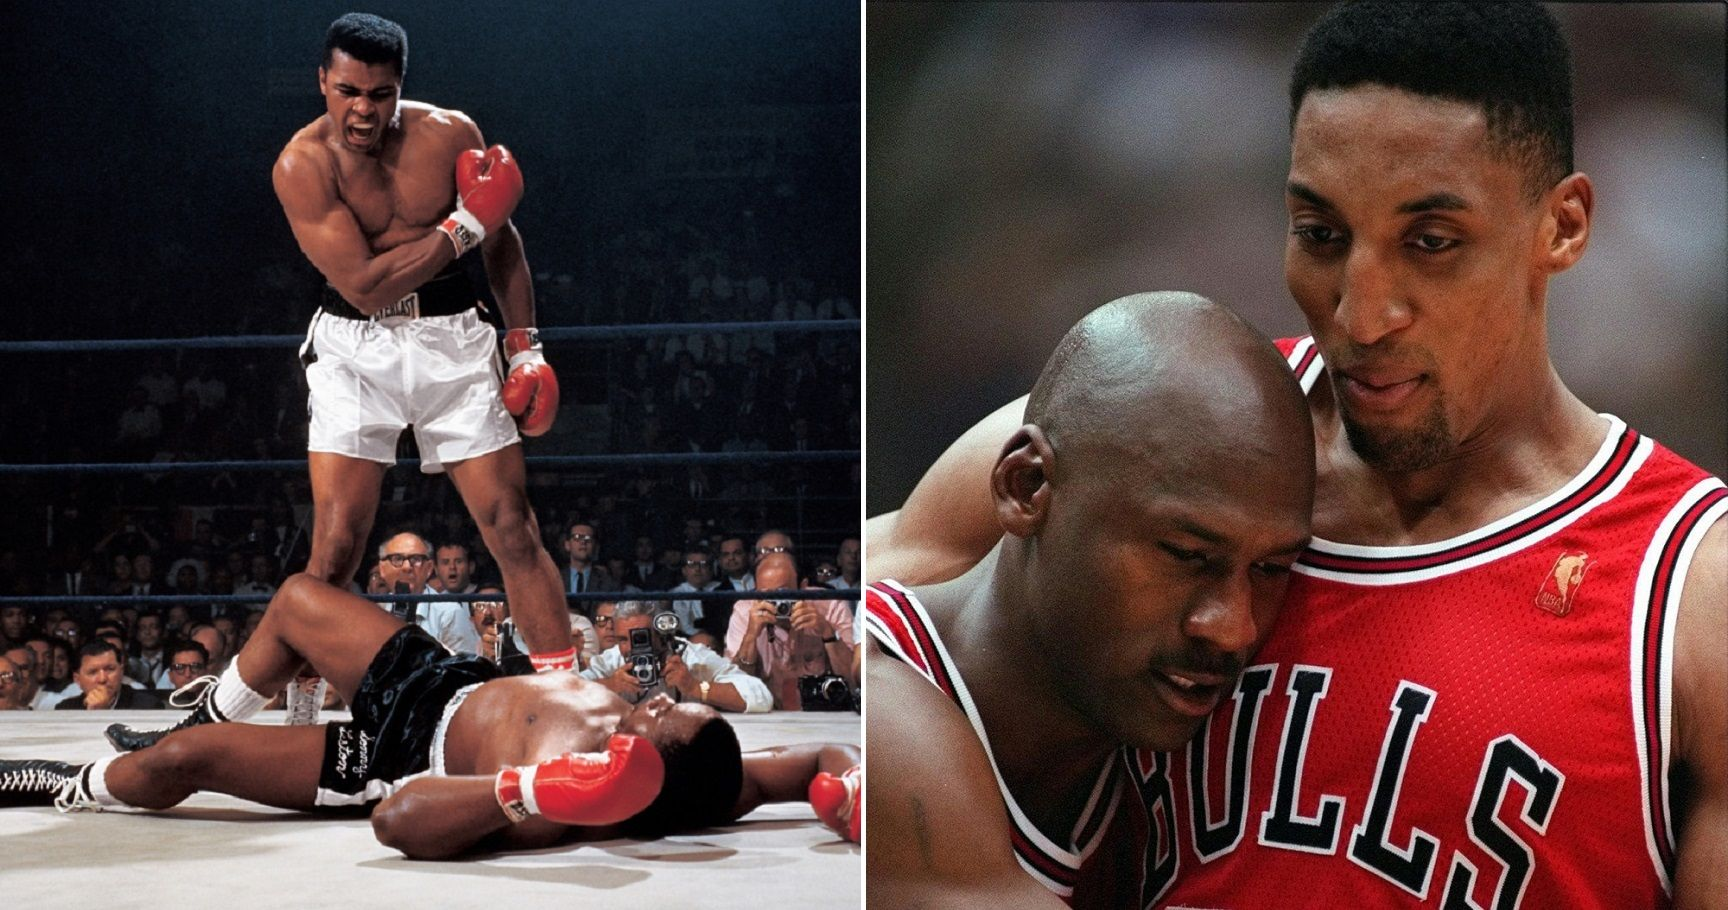 Top 20 Most Iconic Photos In Sports History | TheSportster